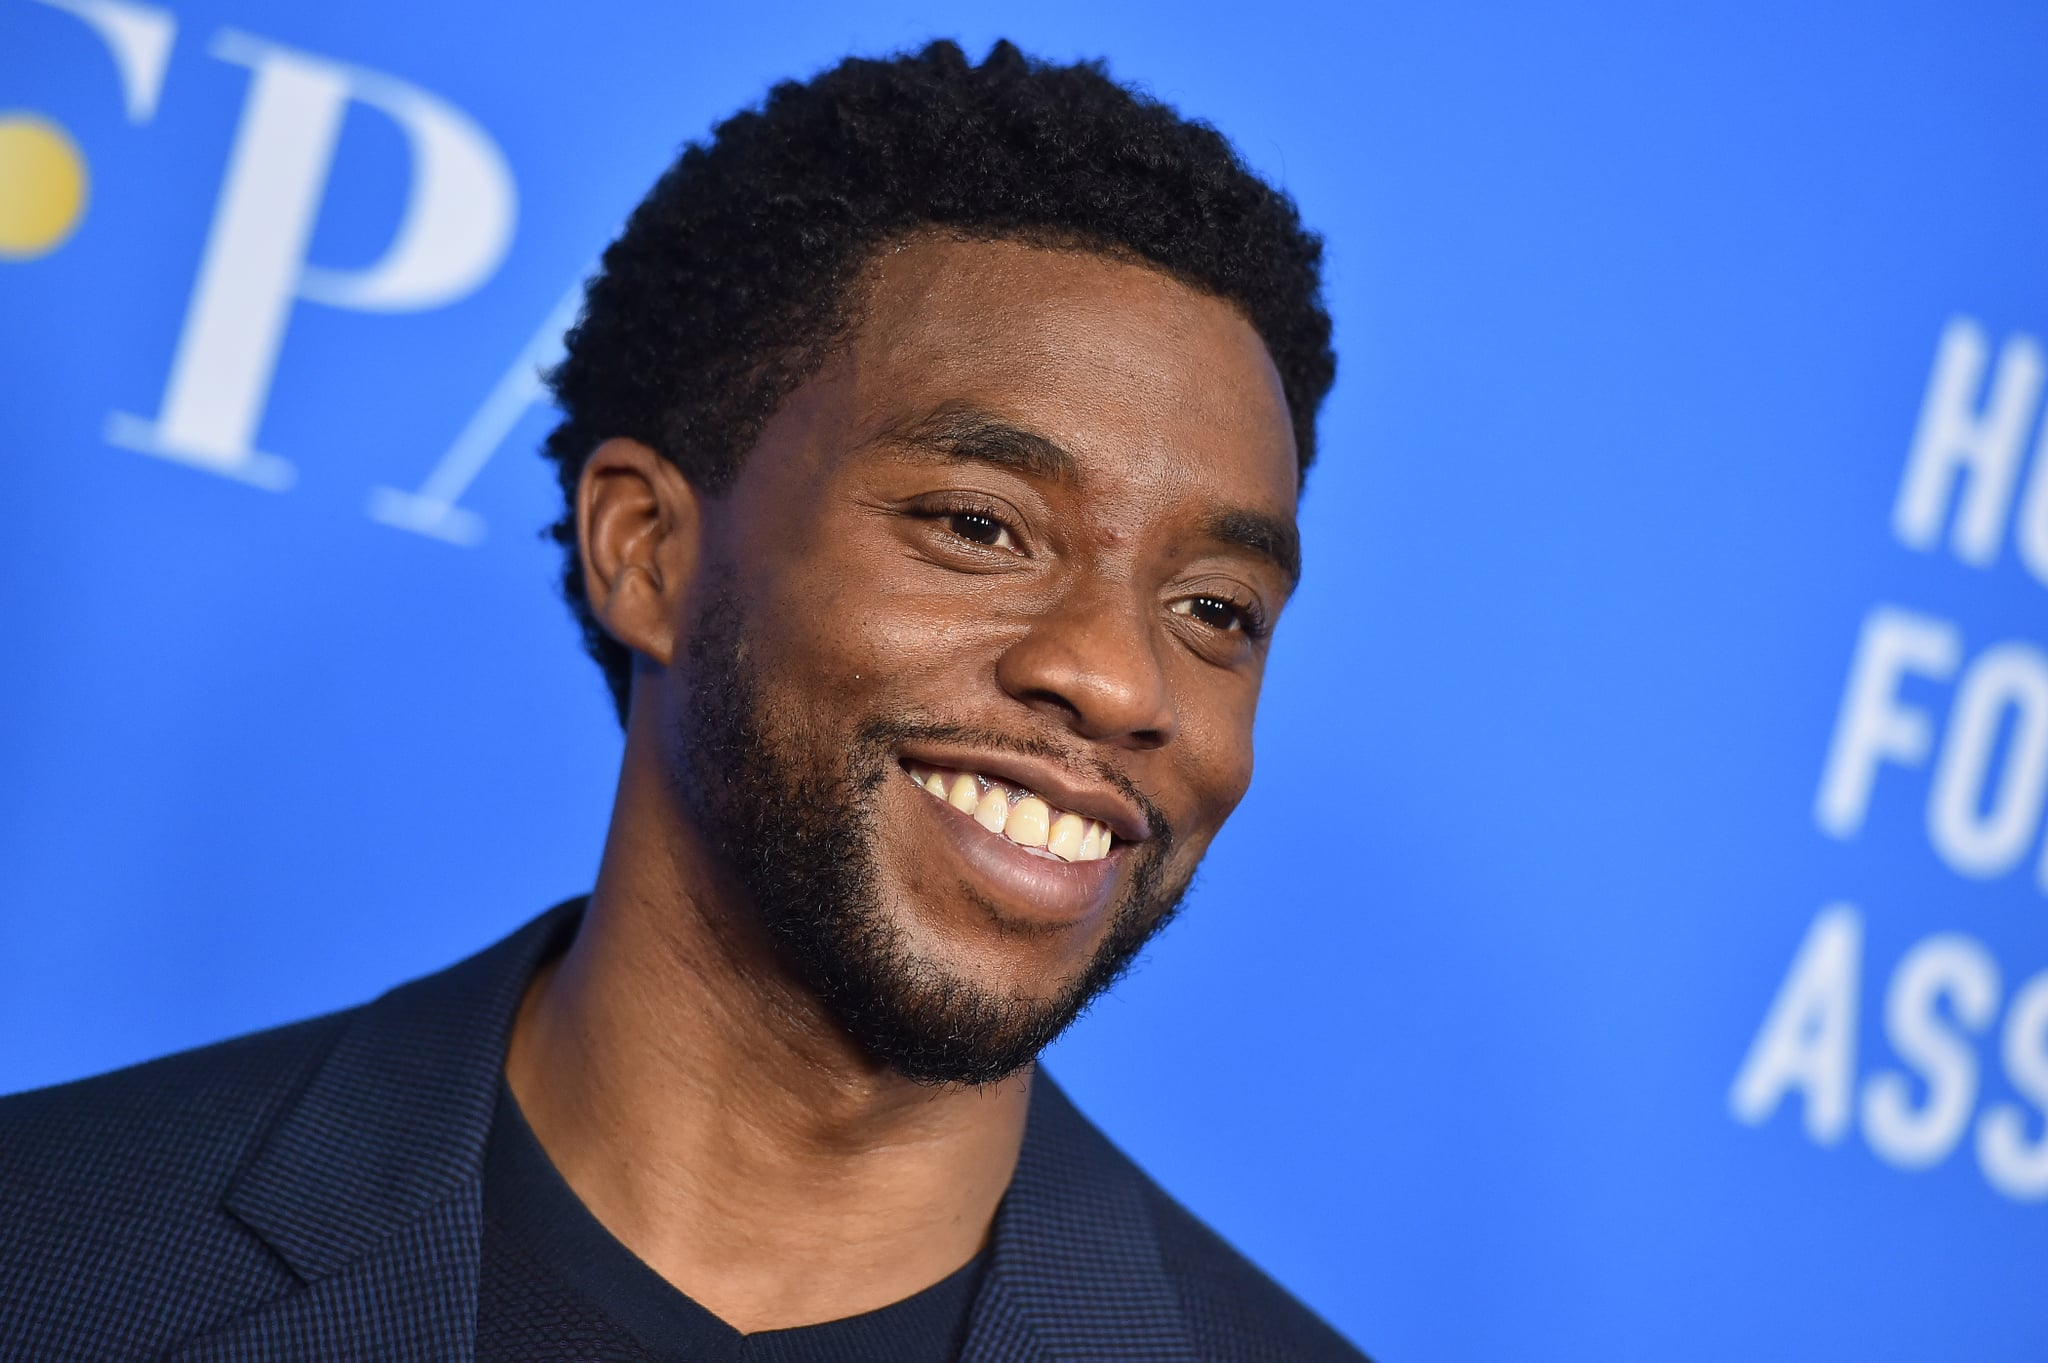 Smiles that belie pains: How 'Black Panther' star Chadwick Boseman died after battle with cancer